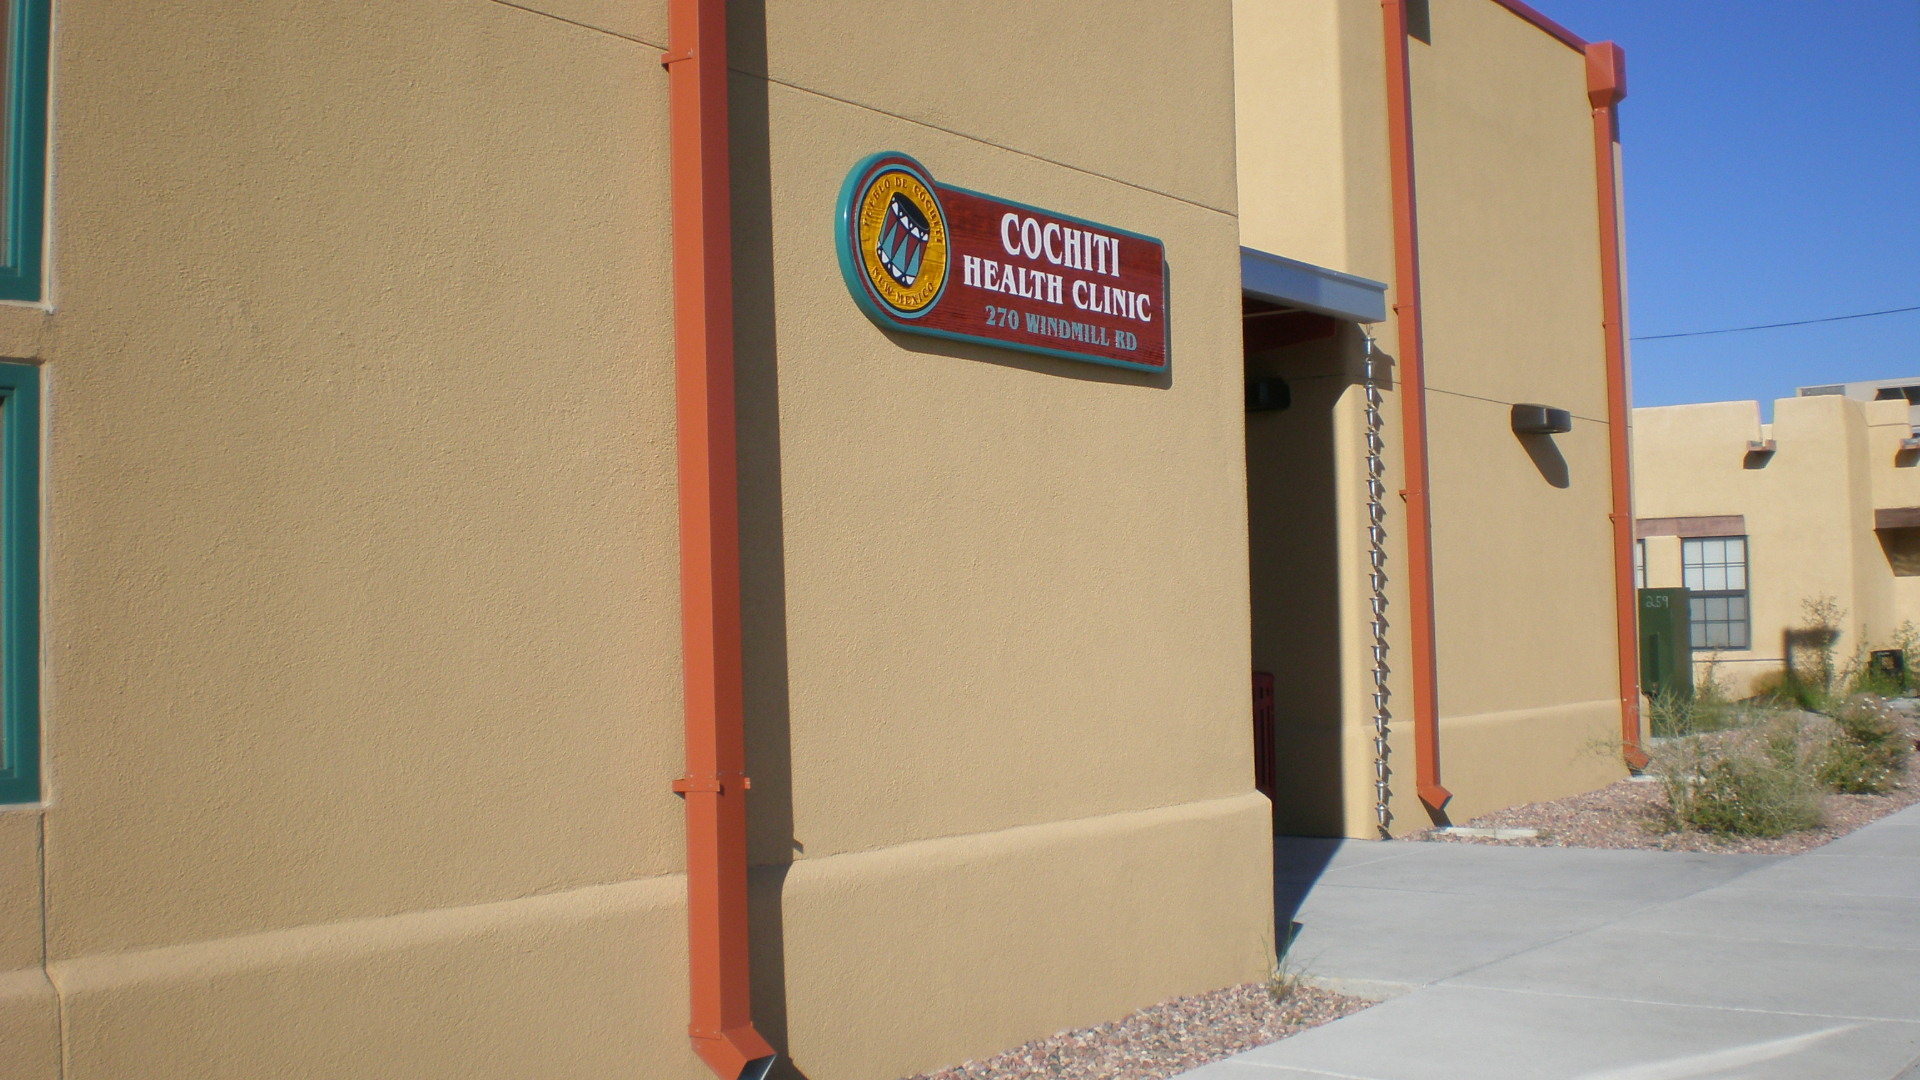 Cochiti Wellness Center